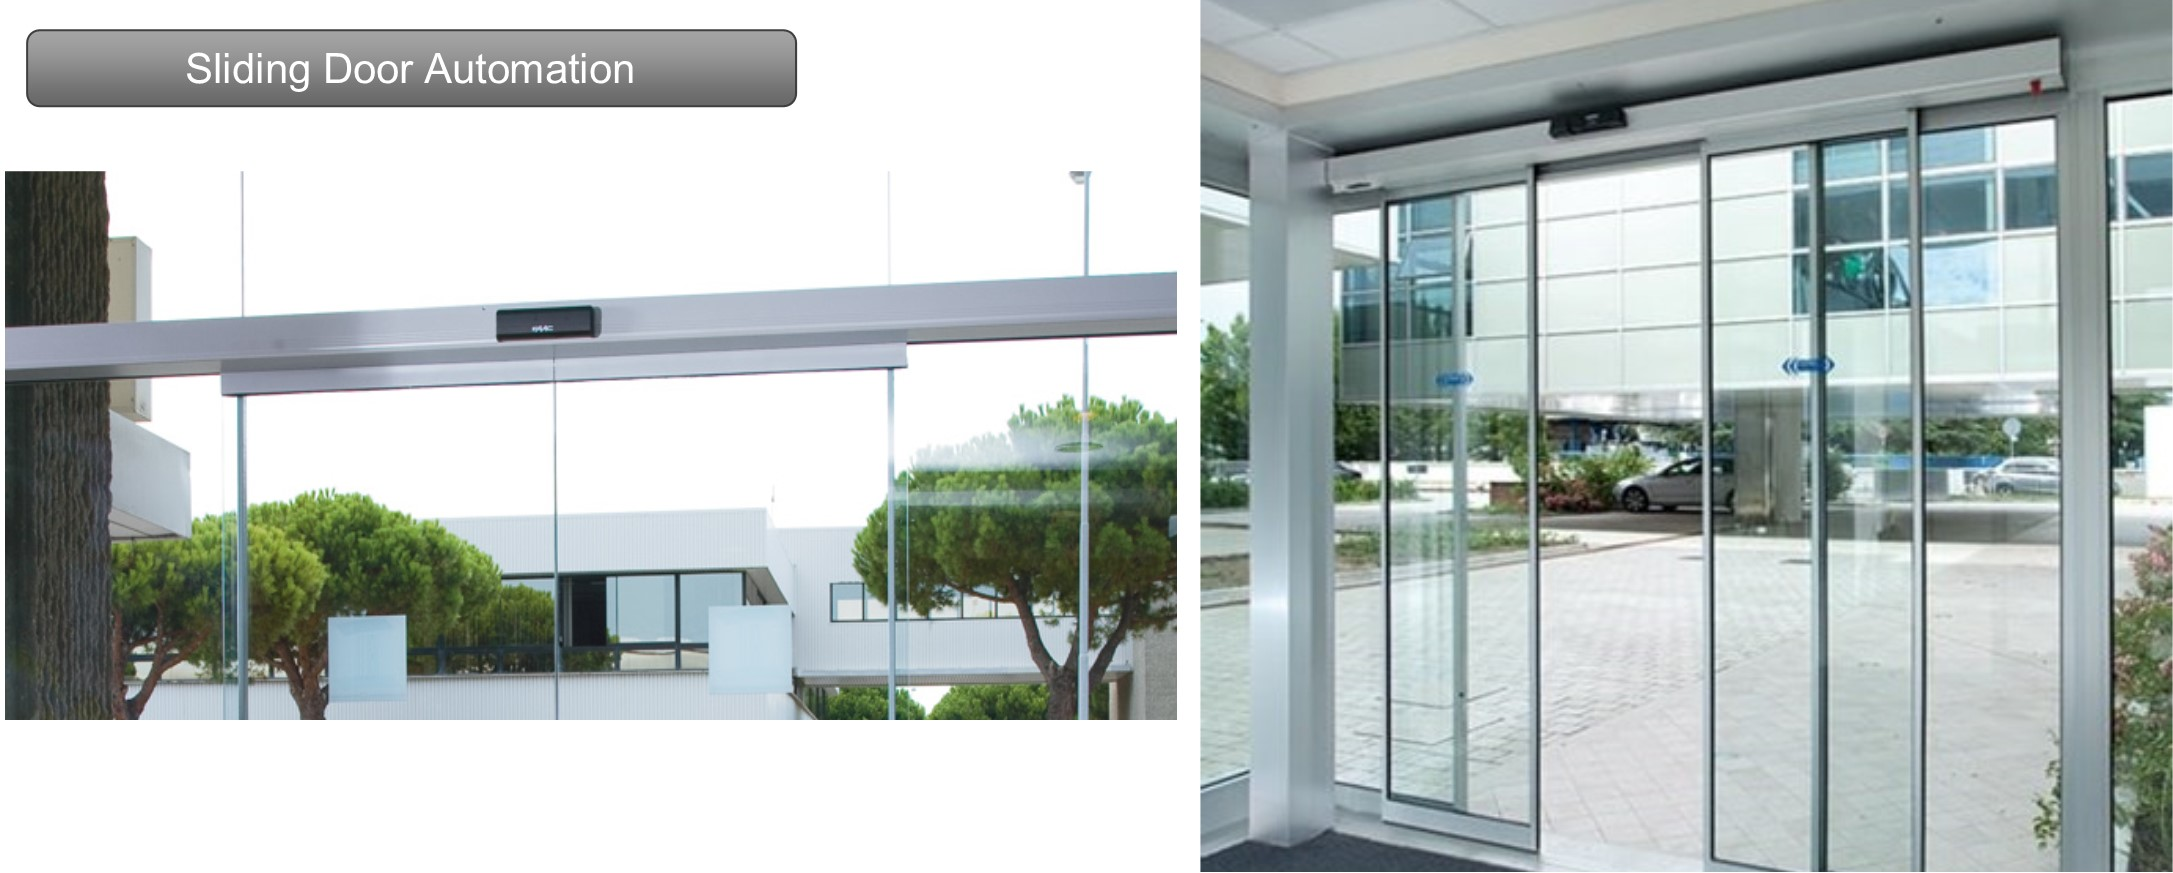 Automatic sliding doors offer a range of benefits. From access control to ease of entry, our attractive designs and innovative technology ensures optimal functionality of your automatic door system.